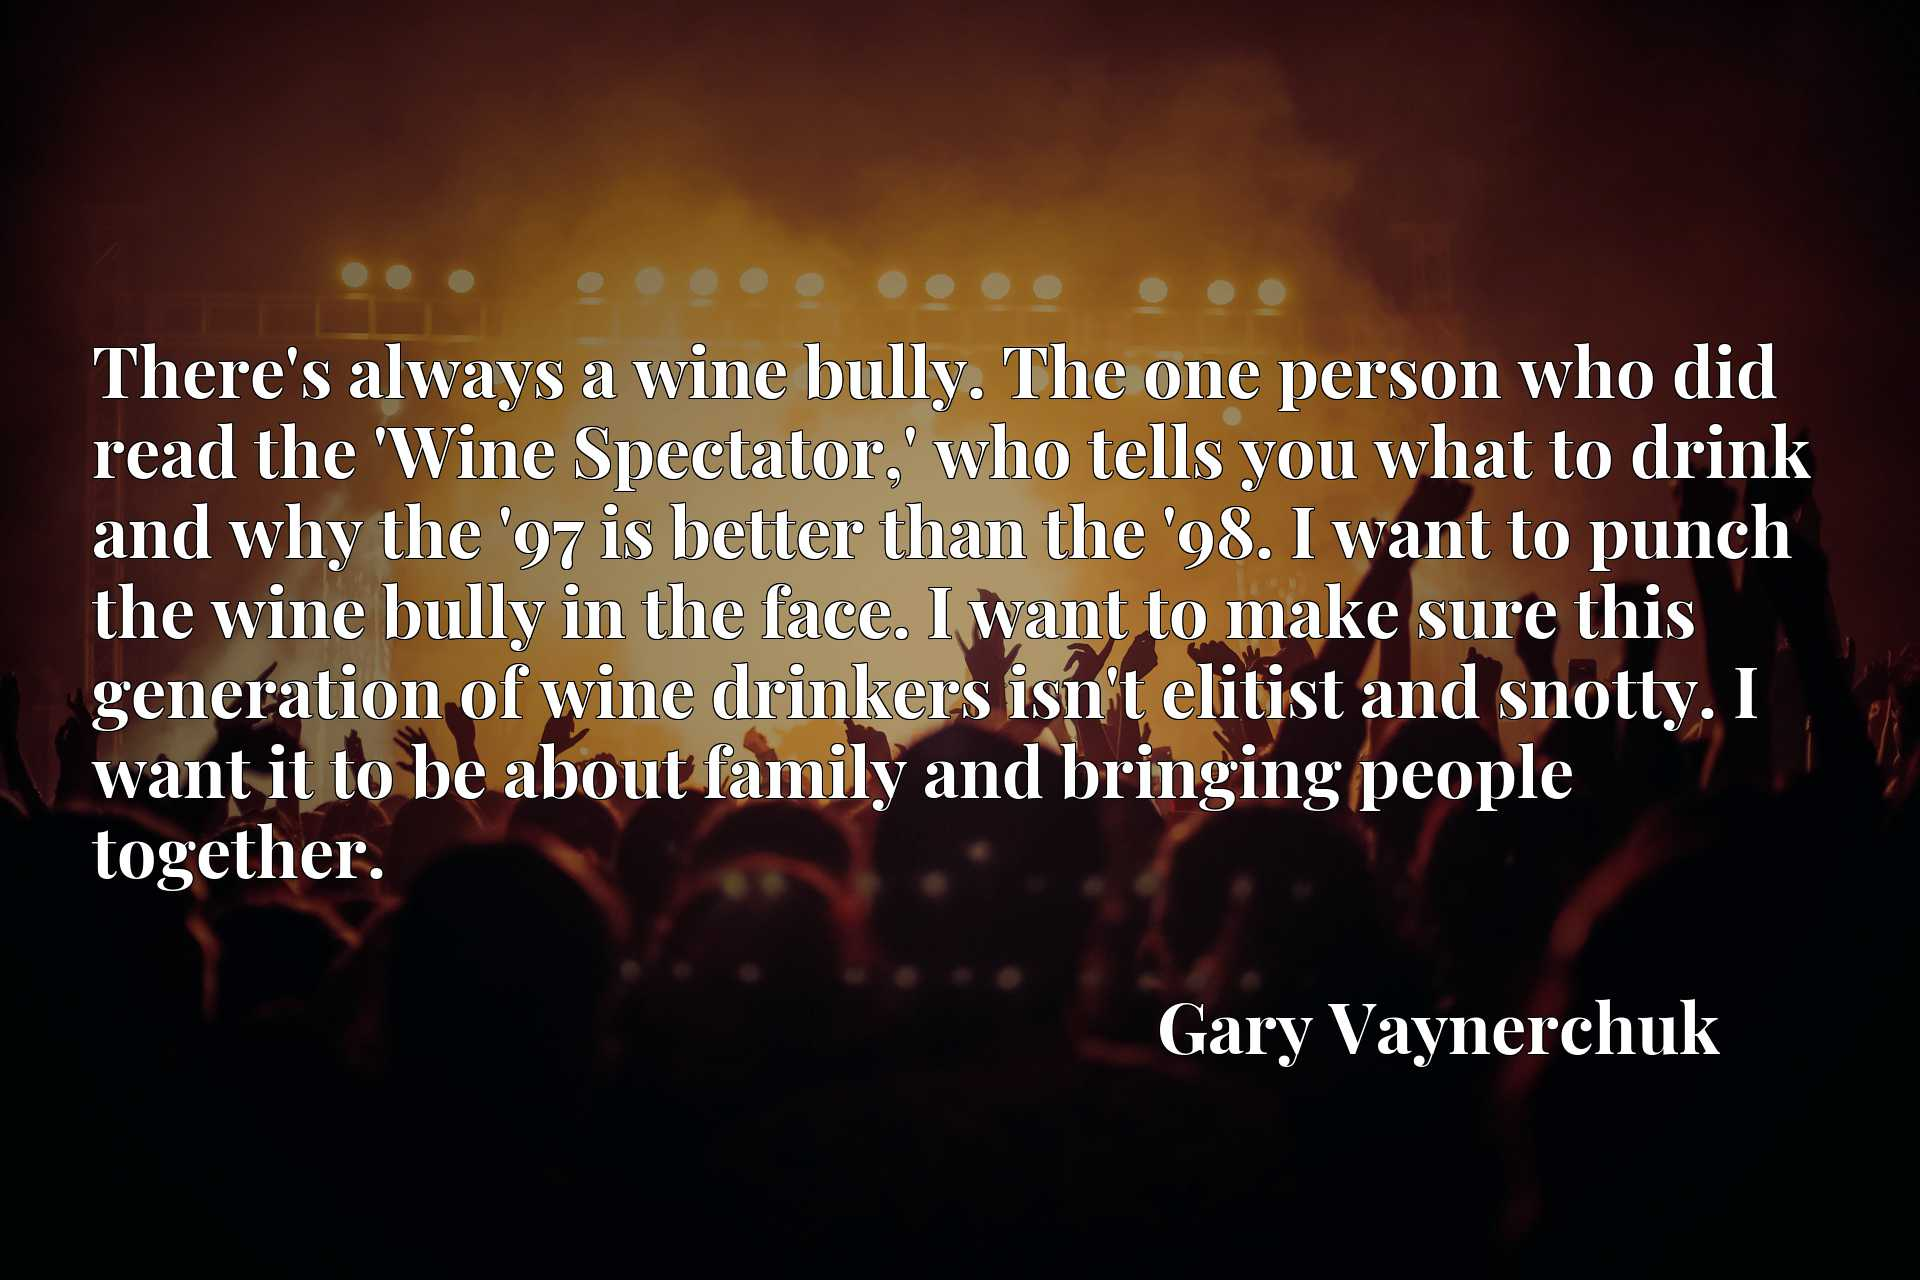 There's always a wine bully. The one person who did read the 'Wine Spectator,' who tells you what to drink and why the '97 is better than the '98. I want to punch the wine bully in the face. I want to make sure this generation of wine drinkers isn't elitist and snotty. I want it to be about family and bringing people together.